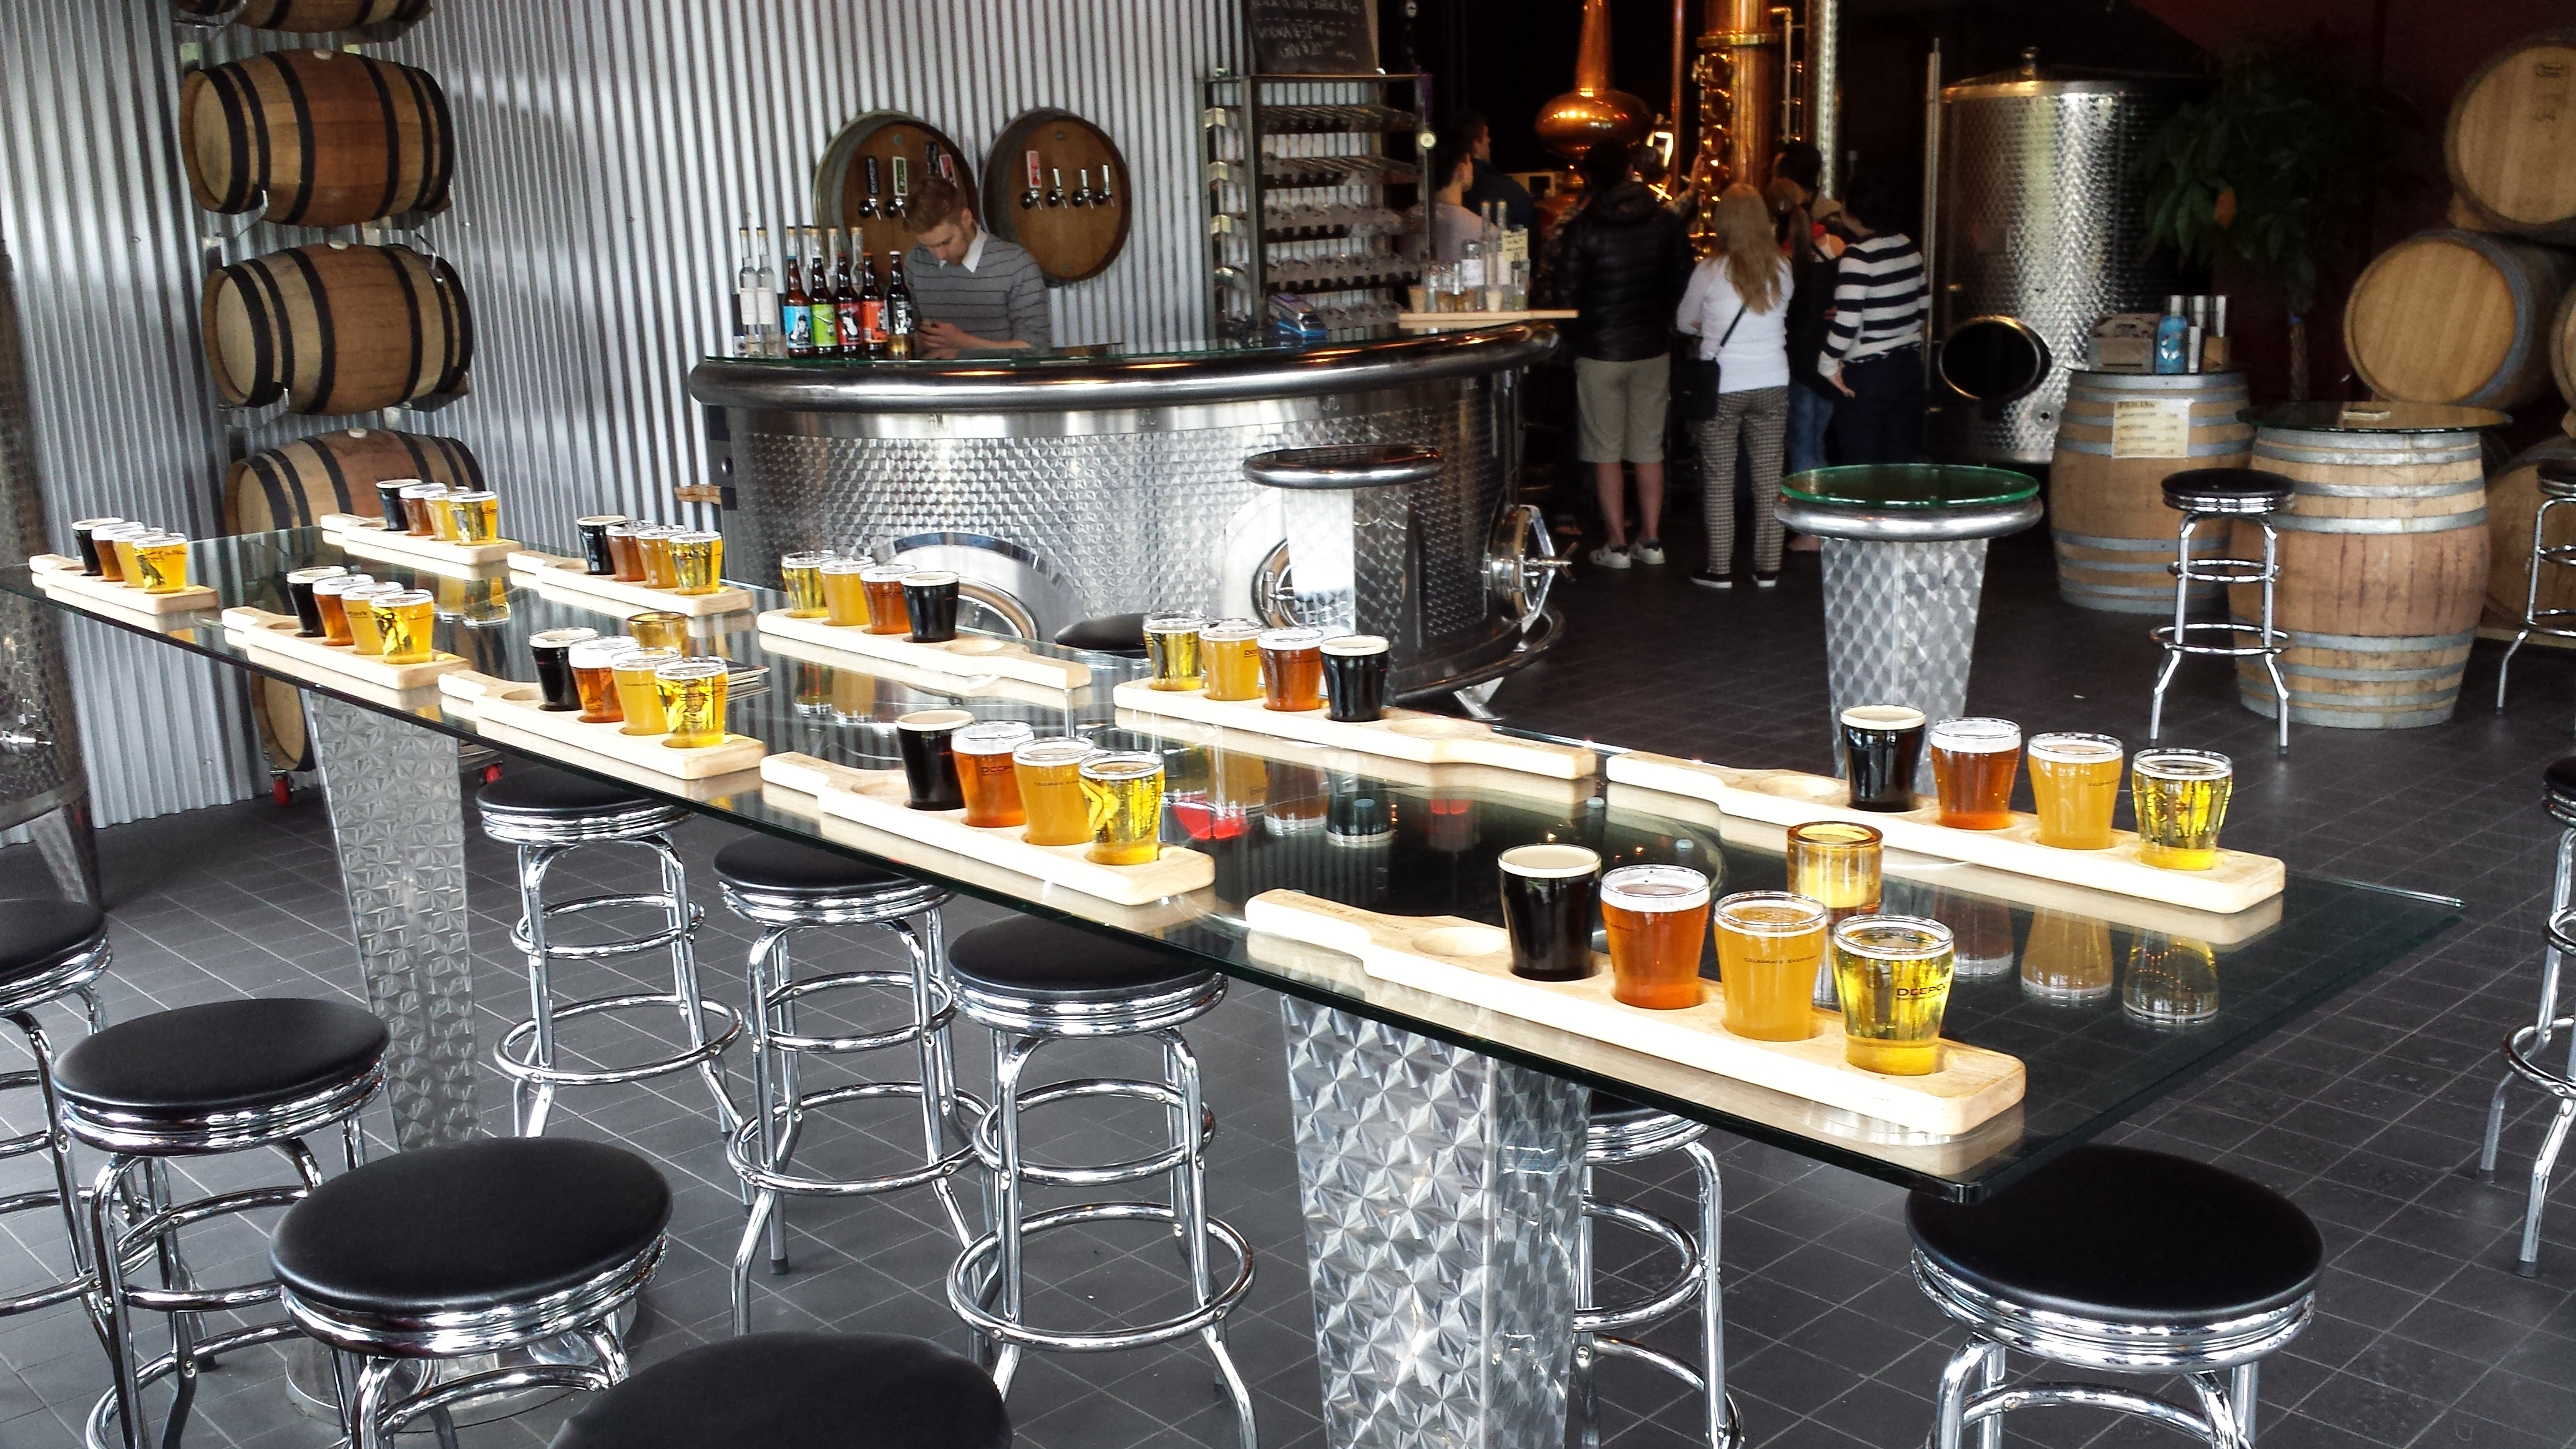 Brewery Tour - Beer Flights at Deep Cove Brewers